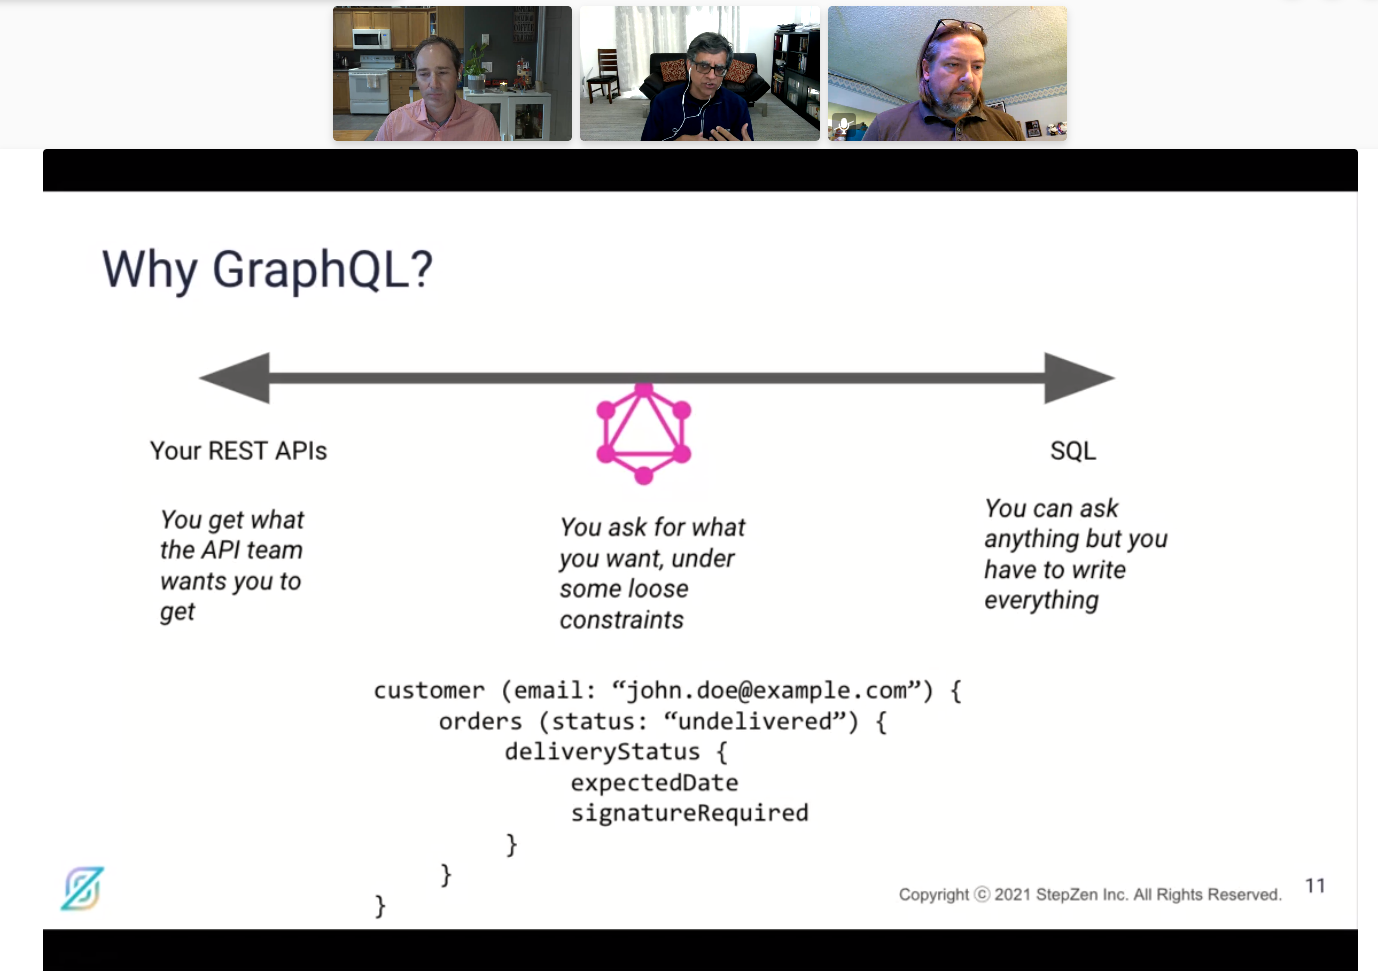 Do you want to power up your APIs with GrpathQL? Would yo like to learn how to easily build a GraphQL API that enables you to get the data you need with a single query? Do you want to learn how to use Headless CMS for your ecommerce solution? Then this hands-on workshop is for a Pro like you!  In this workshop, we will see how StepZen can tie Agility CMS data with e-commerce data from Shopify and will teach you how You can power up your Jamstack projects with API.